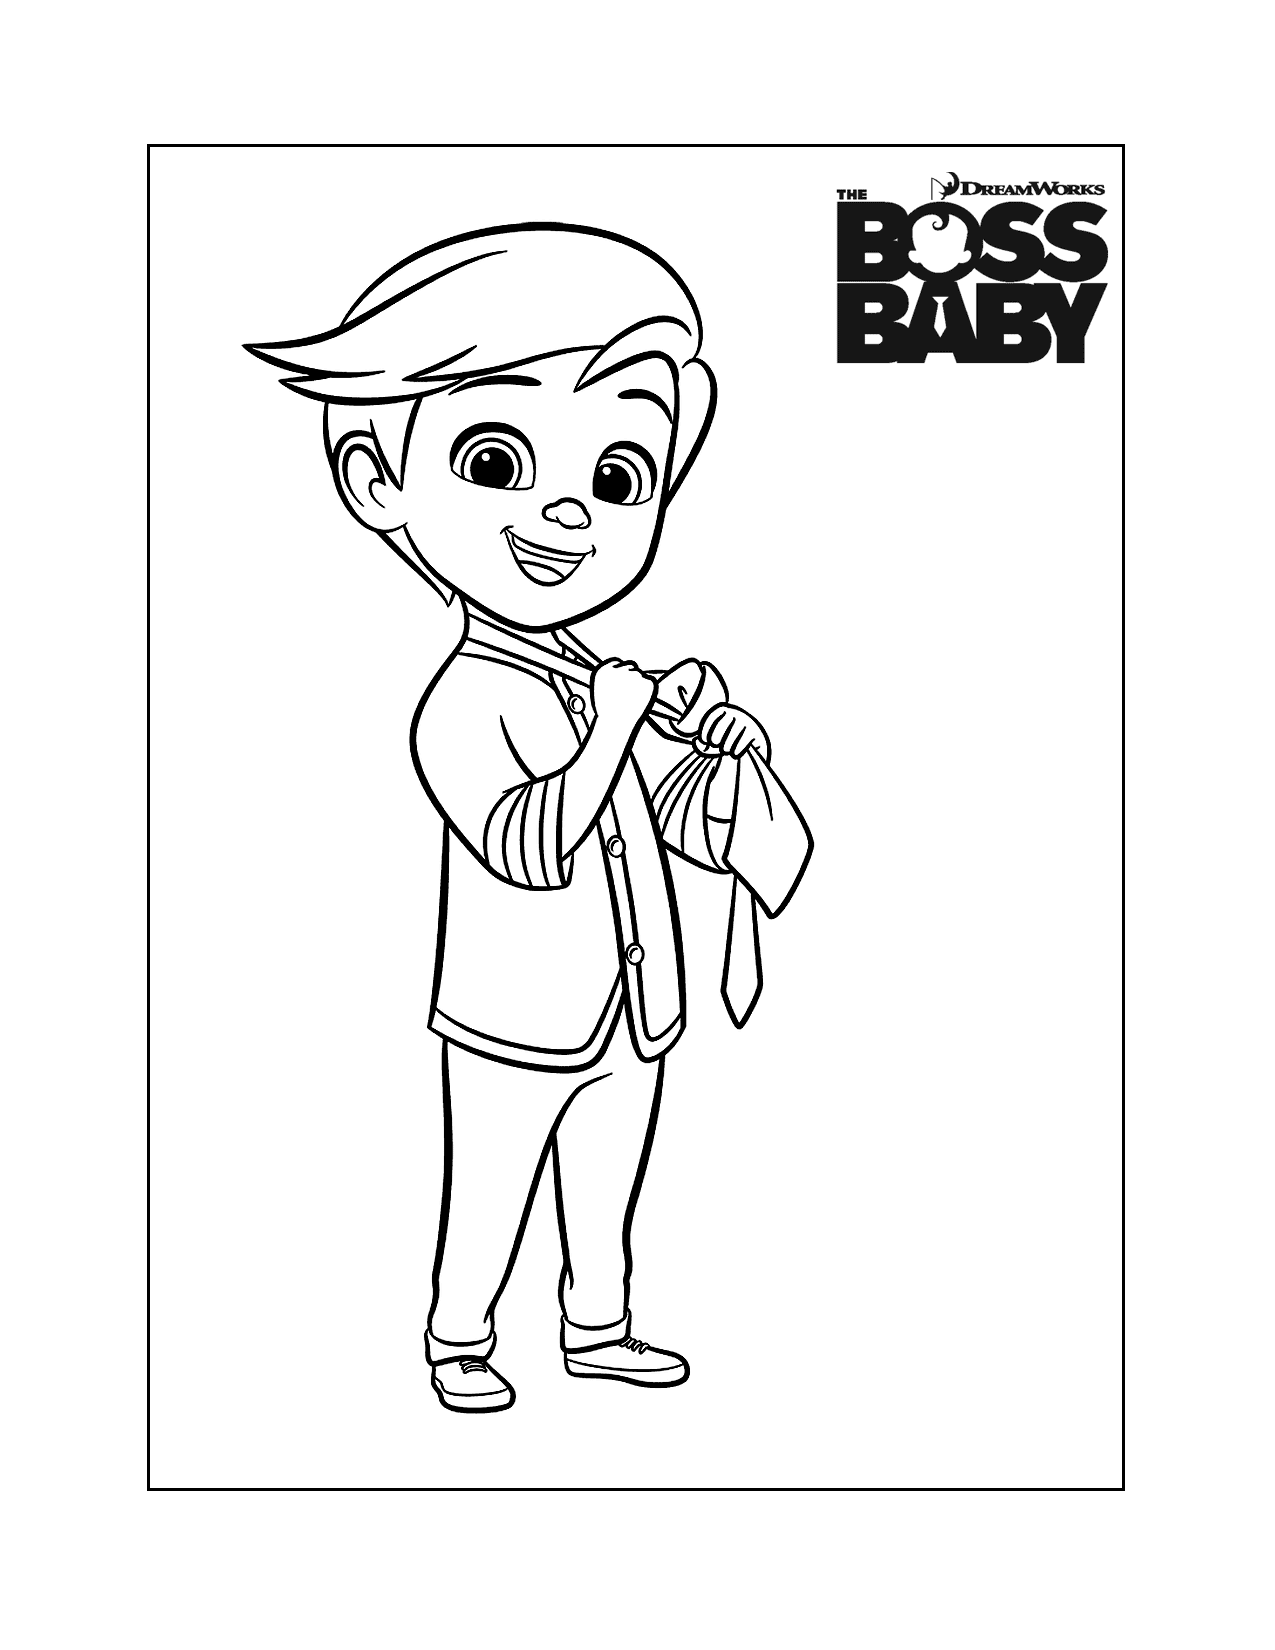 Tim Boss Baby Coloring Page